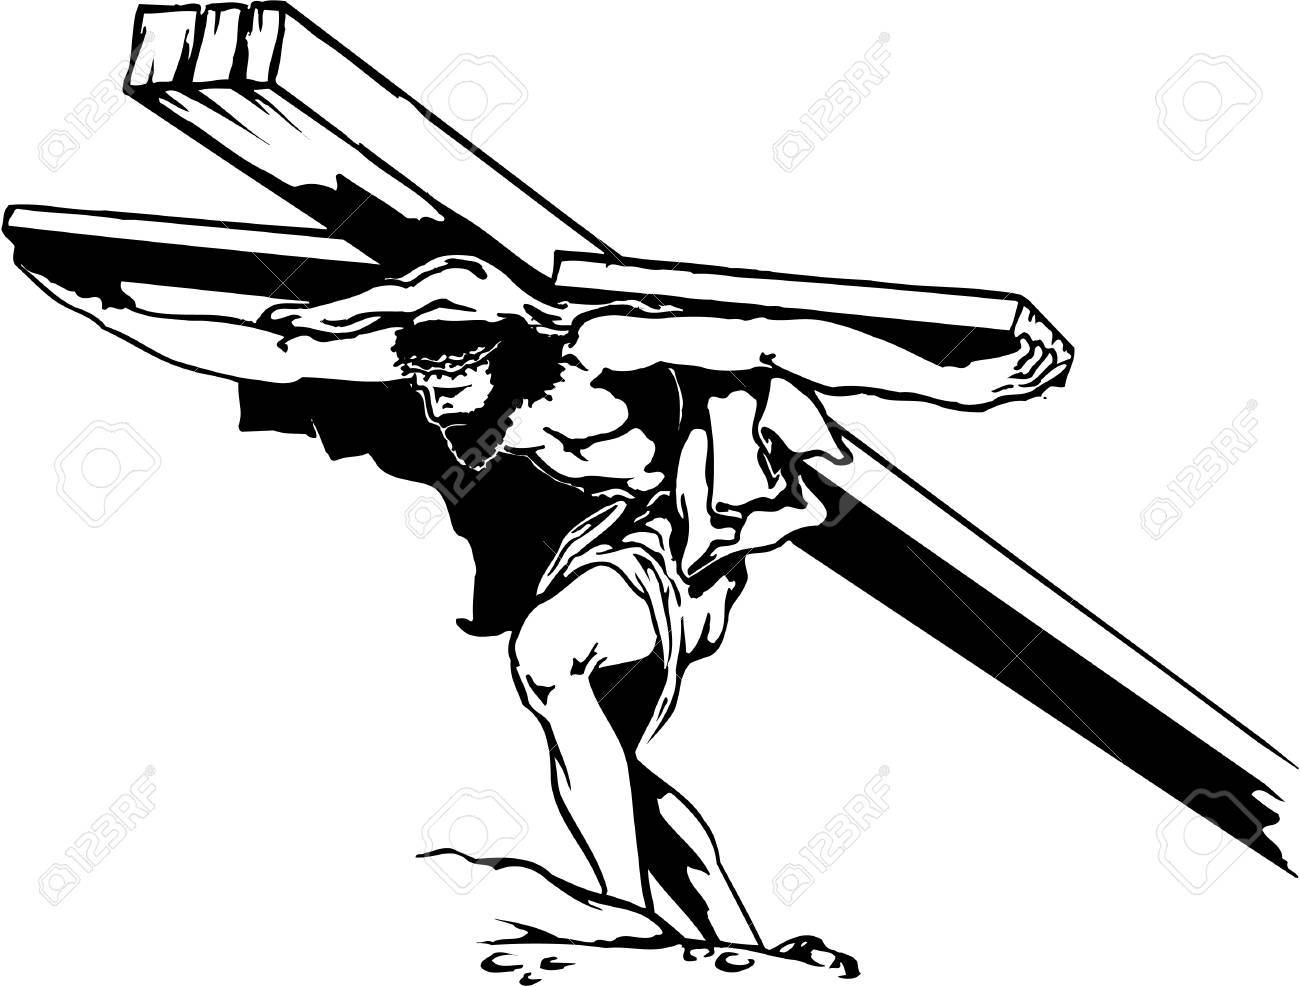 1300x987 Jesus Carrying Cross Illustration Royalty Free Cliparts, Vectors